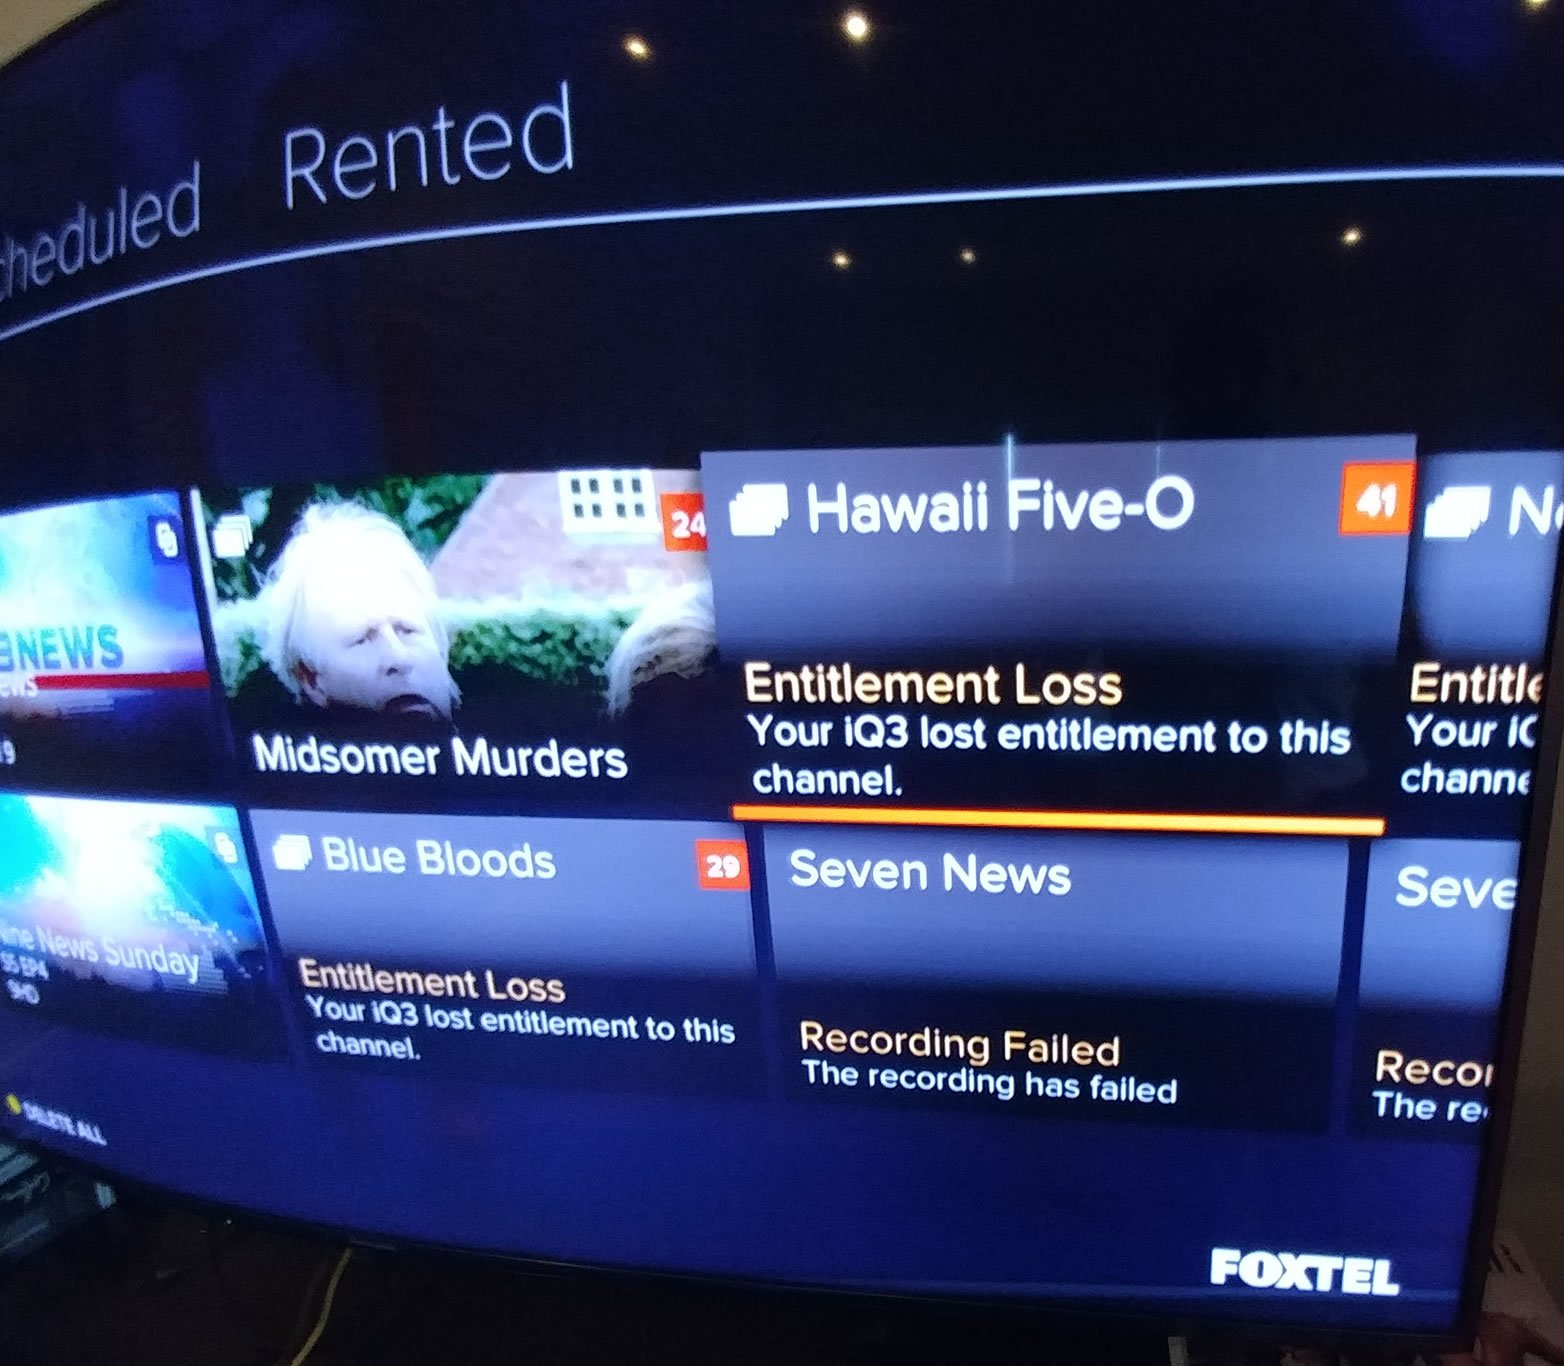 Foxtel 2 COMMENT: Why No One in Their Right Mind Should Consider Foxtel